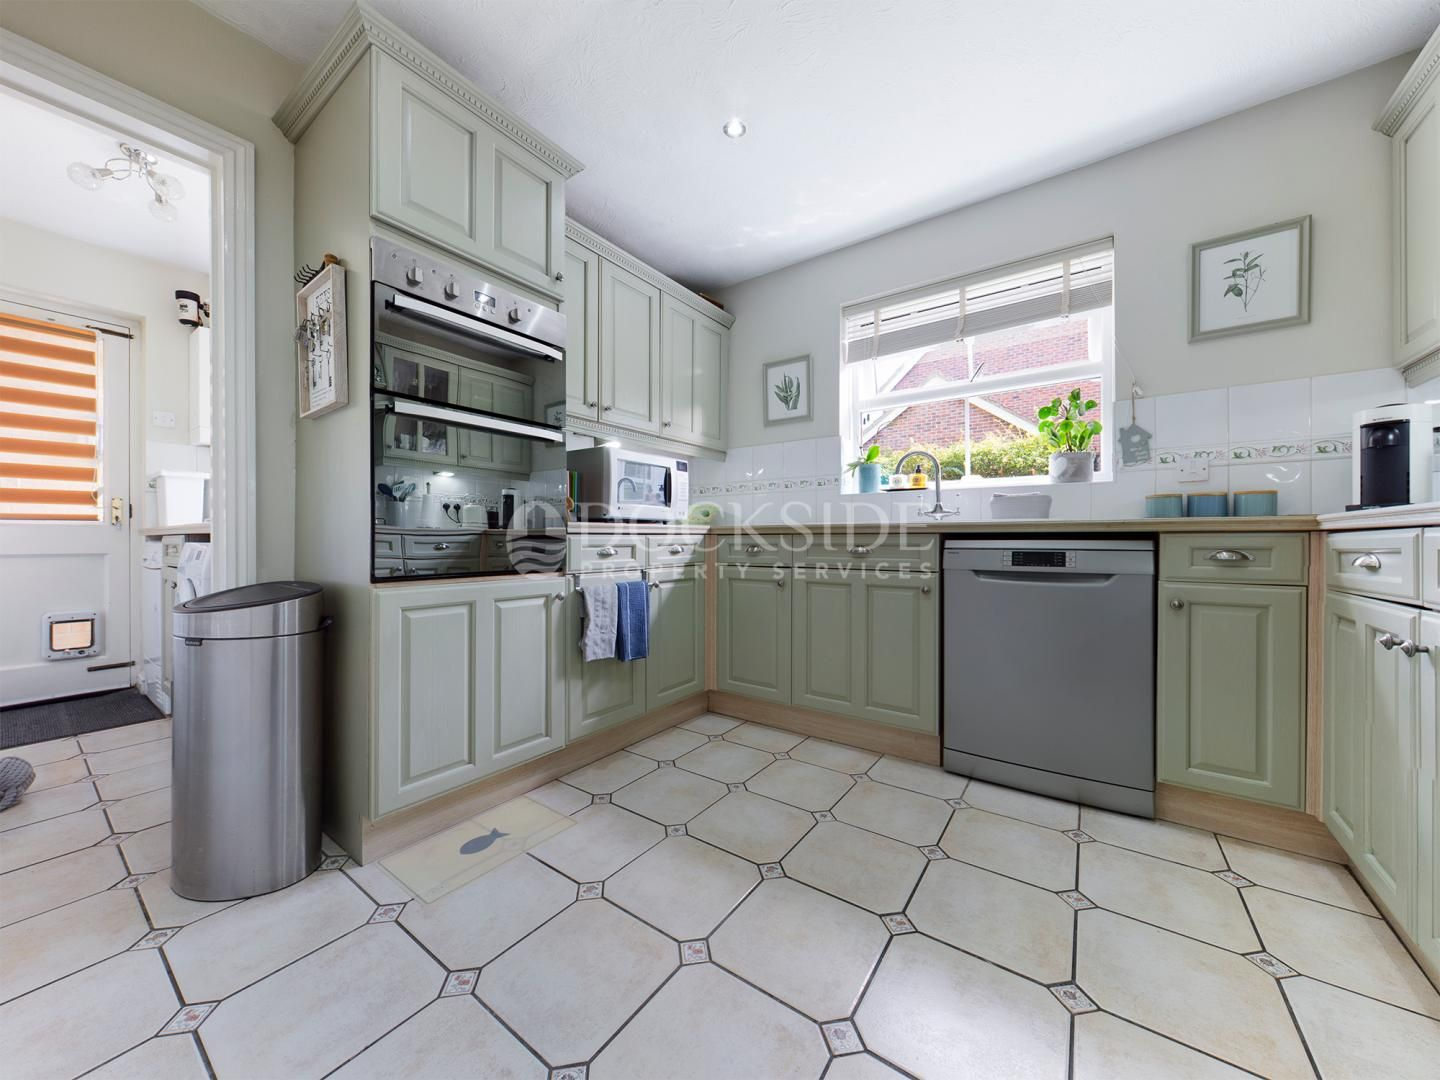 3 bed house for sale in Haven Way  - Property Image 7